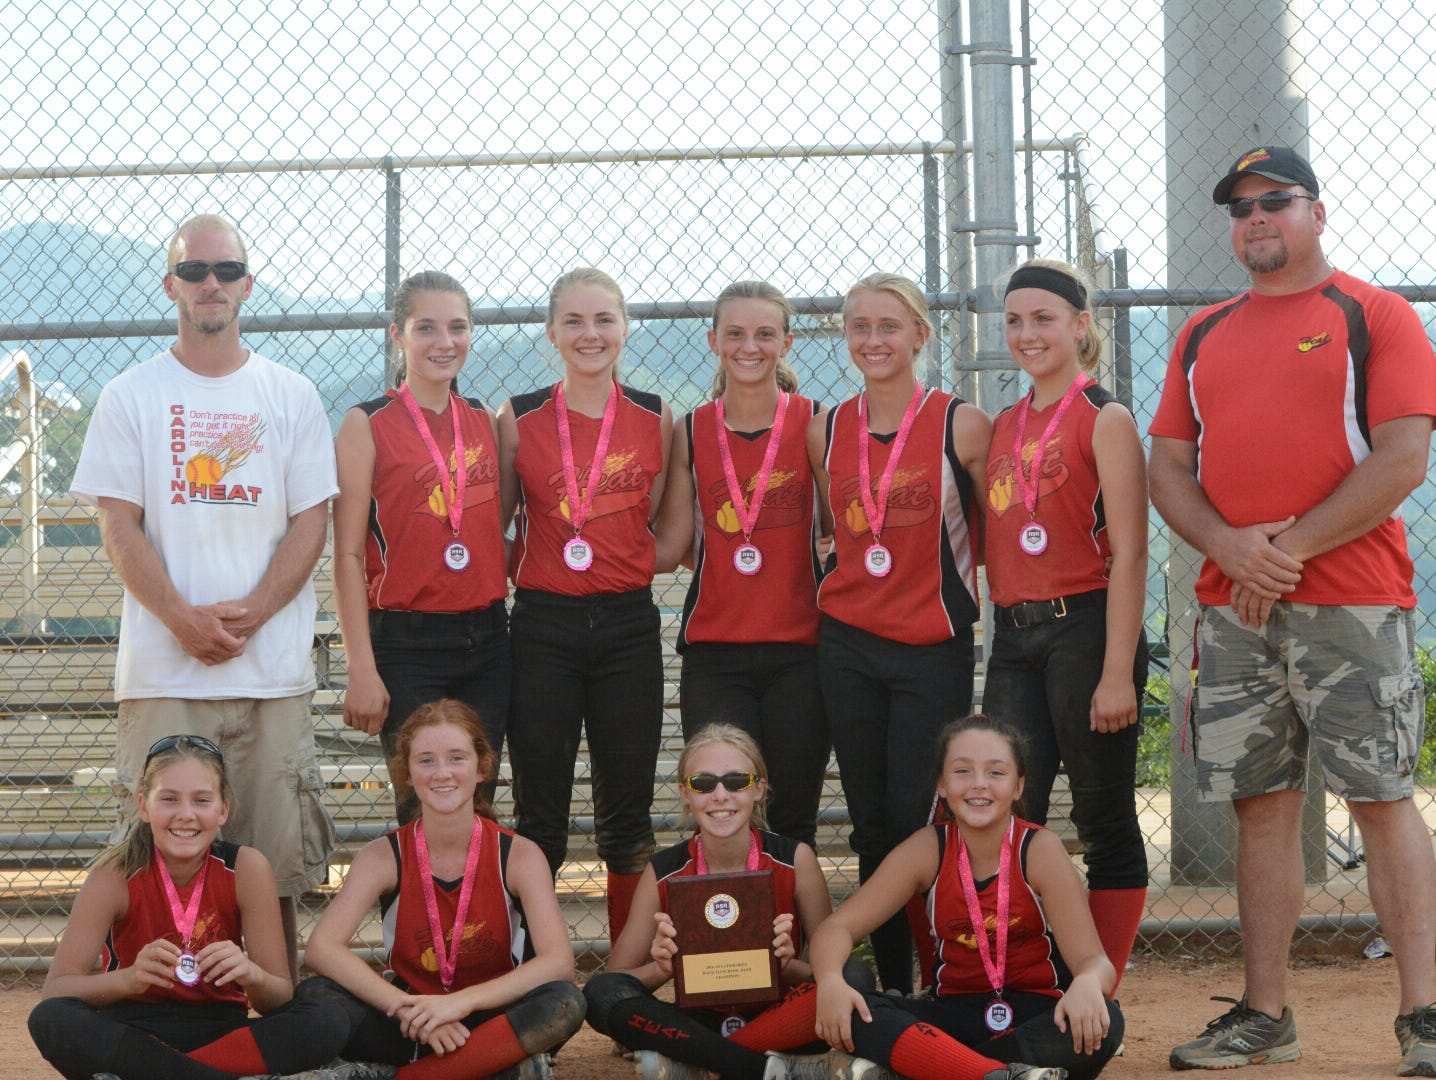 The Carolina Heat 12 and under softball team won the ASA Back to School Bash tournament over the weekend in Cherokee.